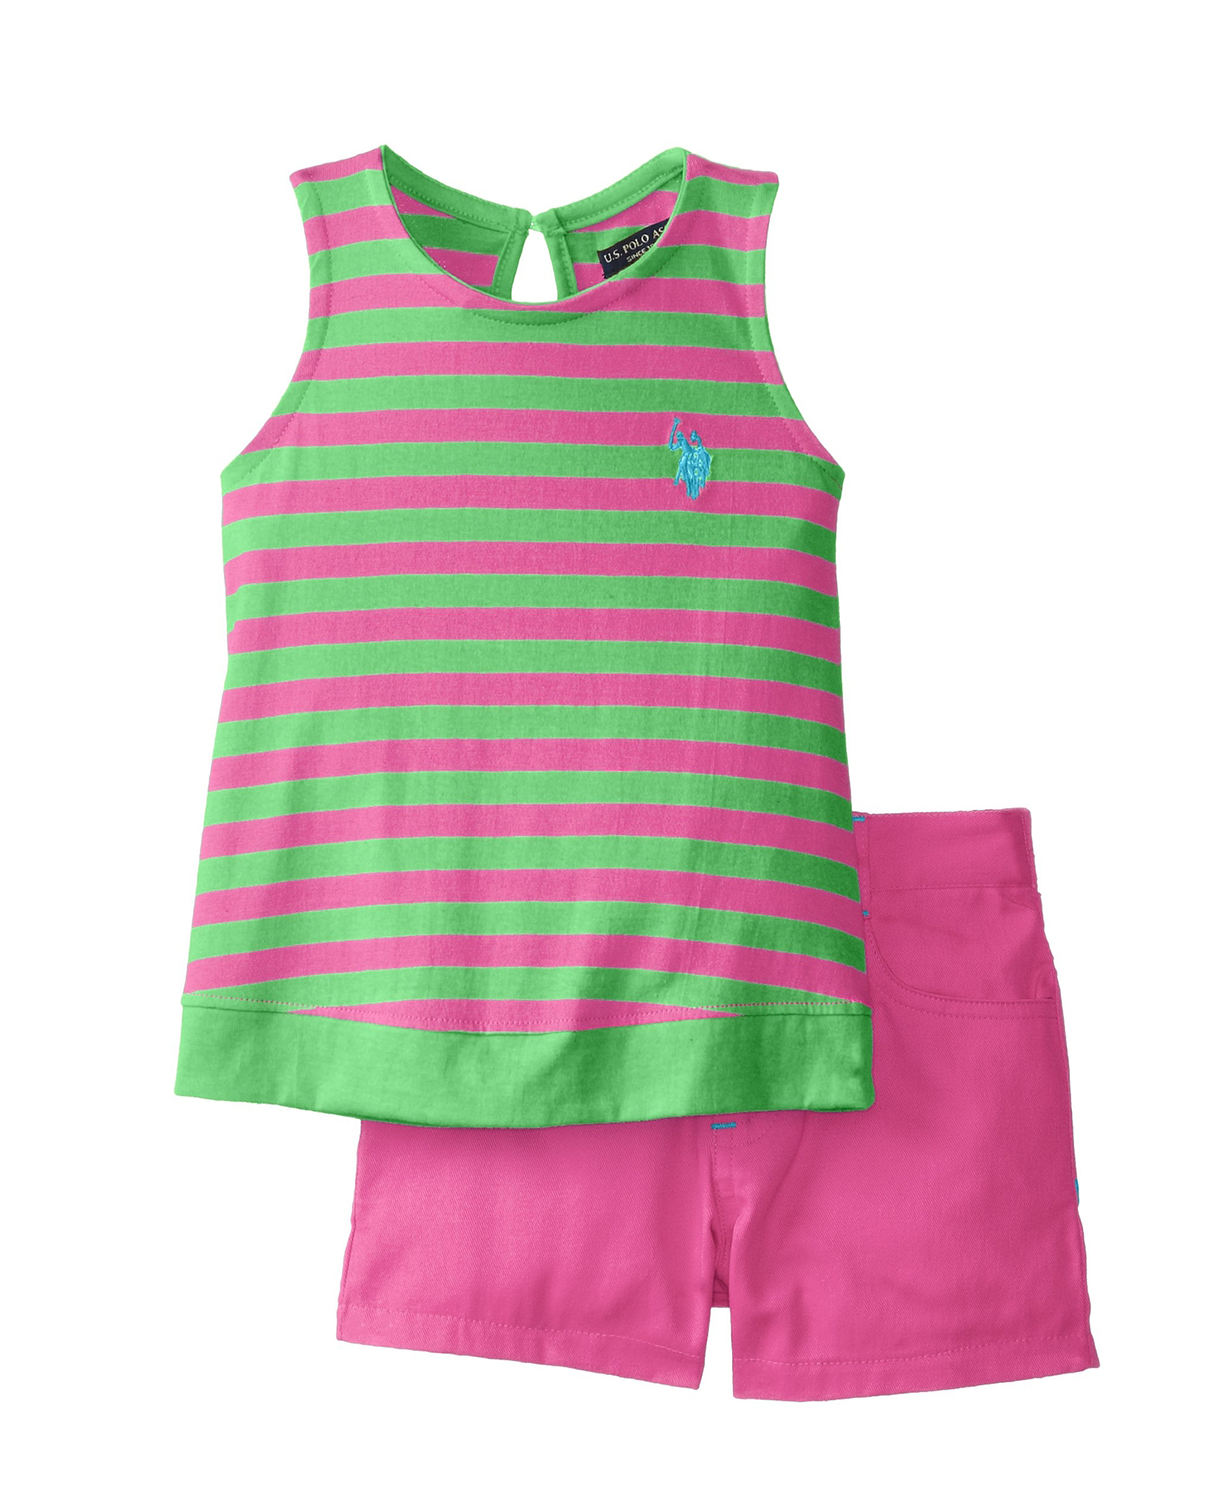 U.S. POLO ASSN. Little Girls' Striped Toddler Girl Clothes | Baby ...